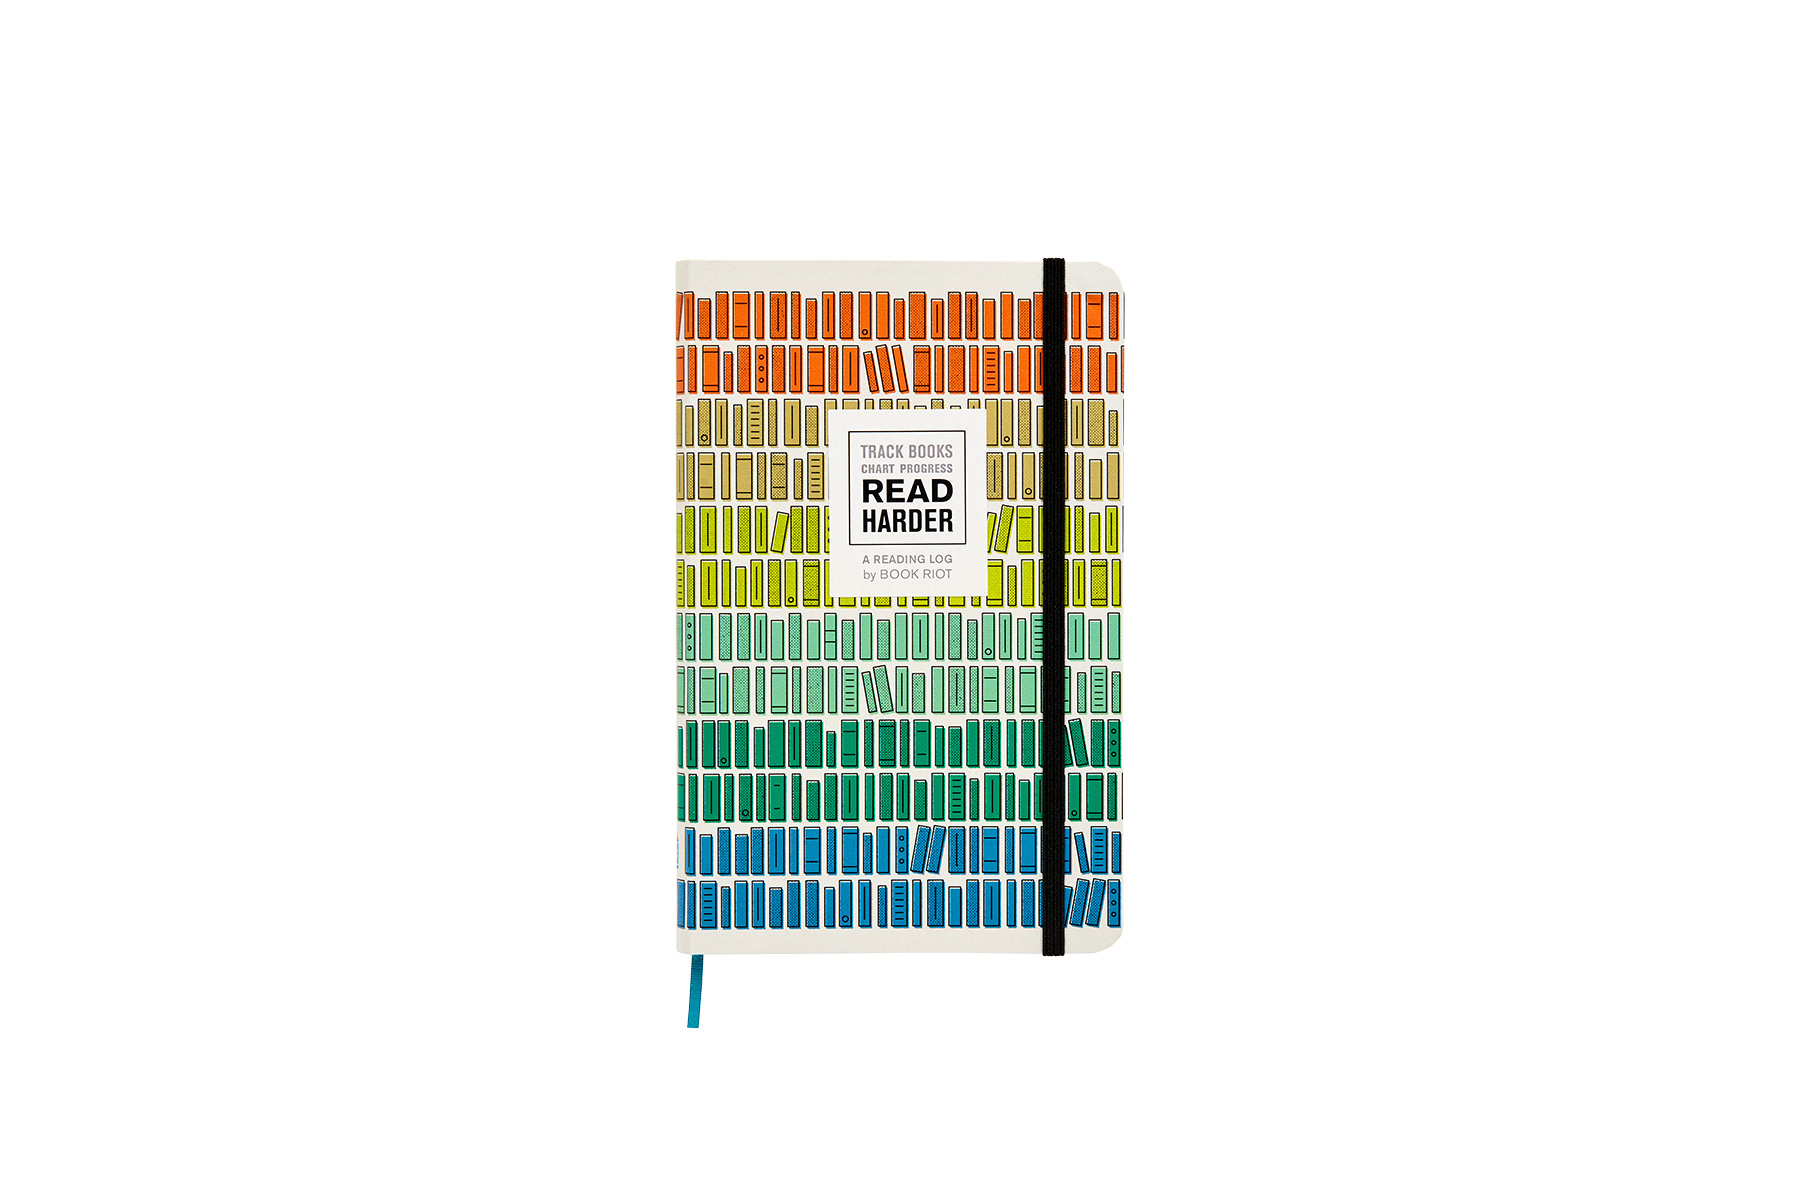 Gifts for Book Lovers: Read Harder (A Reading Log)